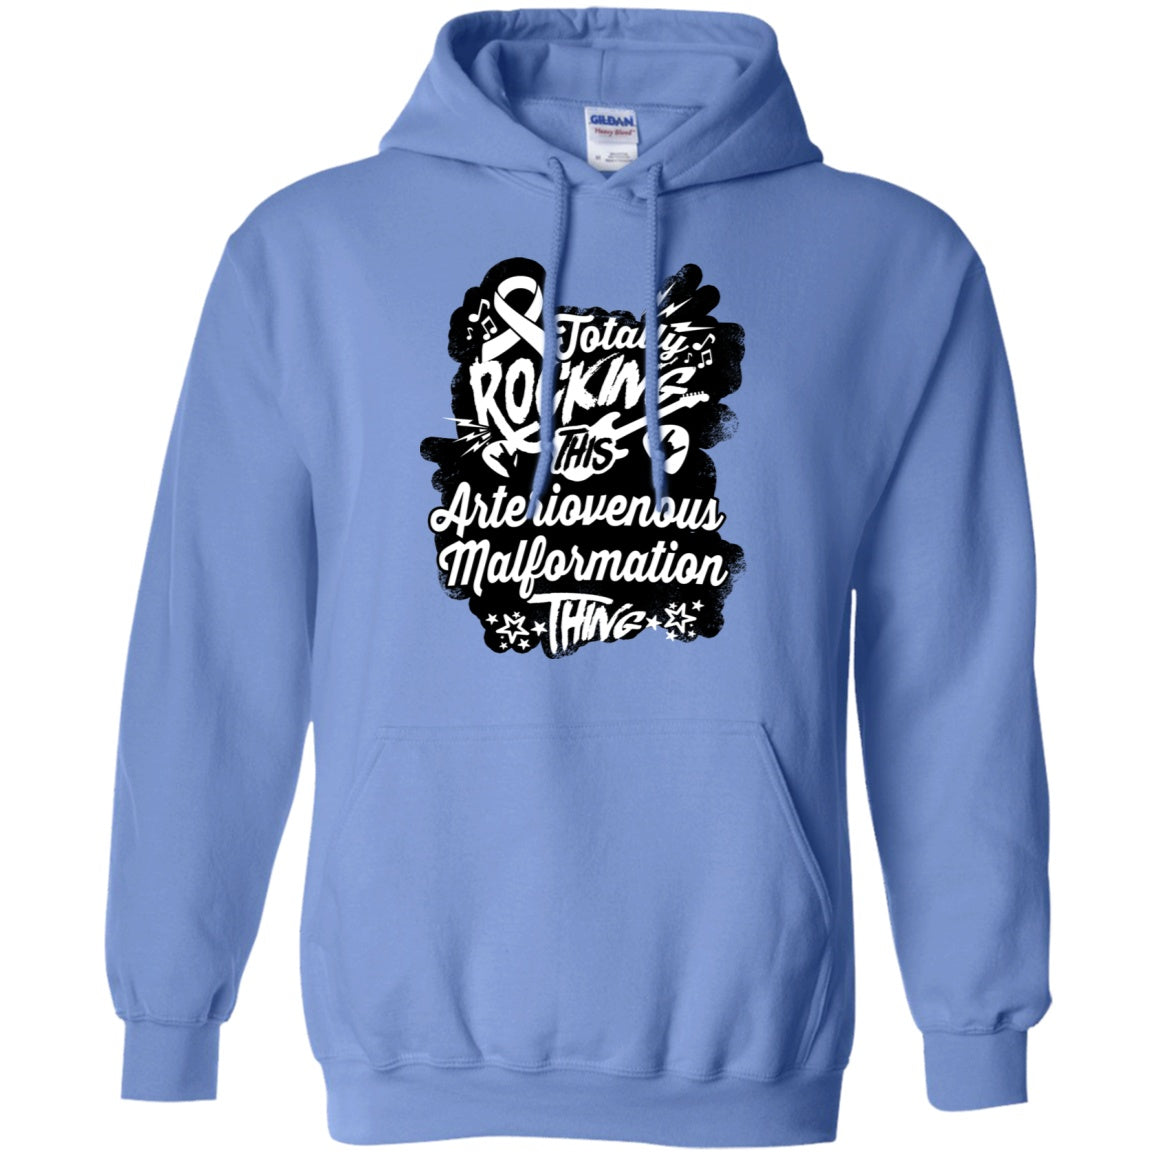 Rocking Arteriovenous Malformation Pullover Hoodie 8 oz. - The Unchargeables